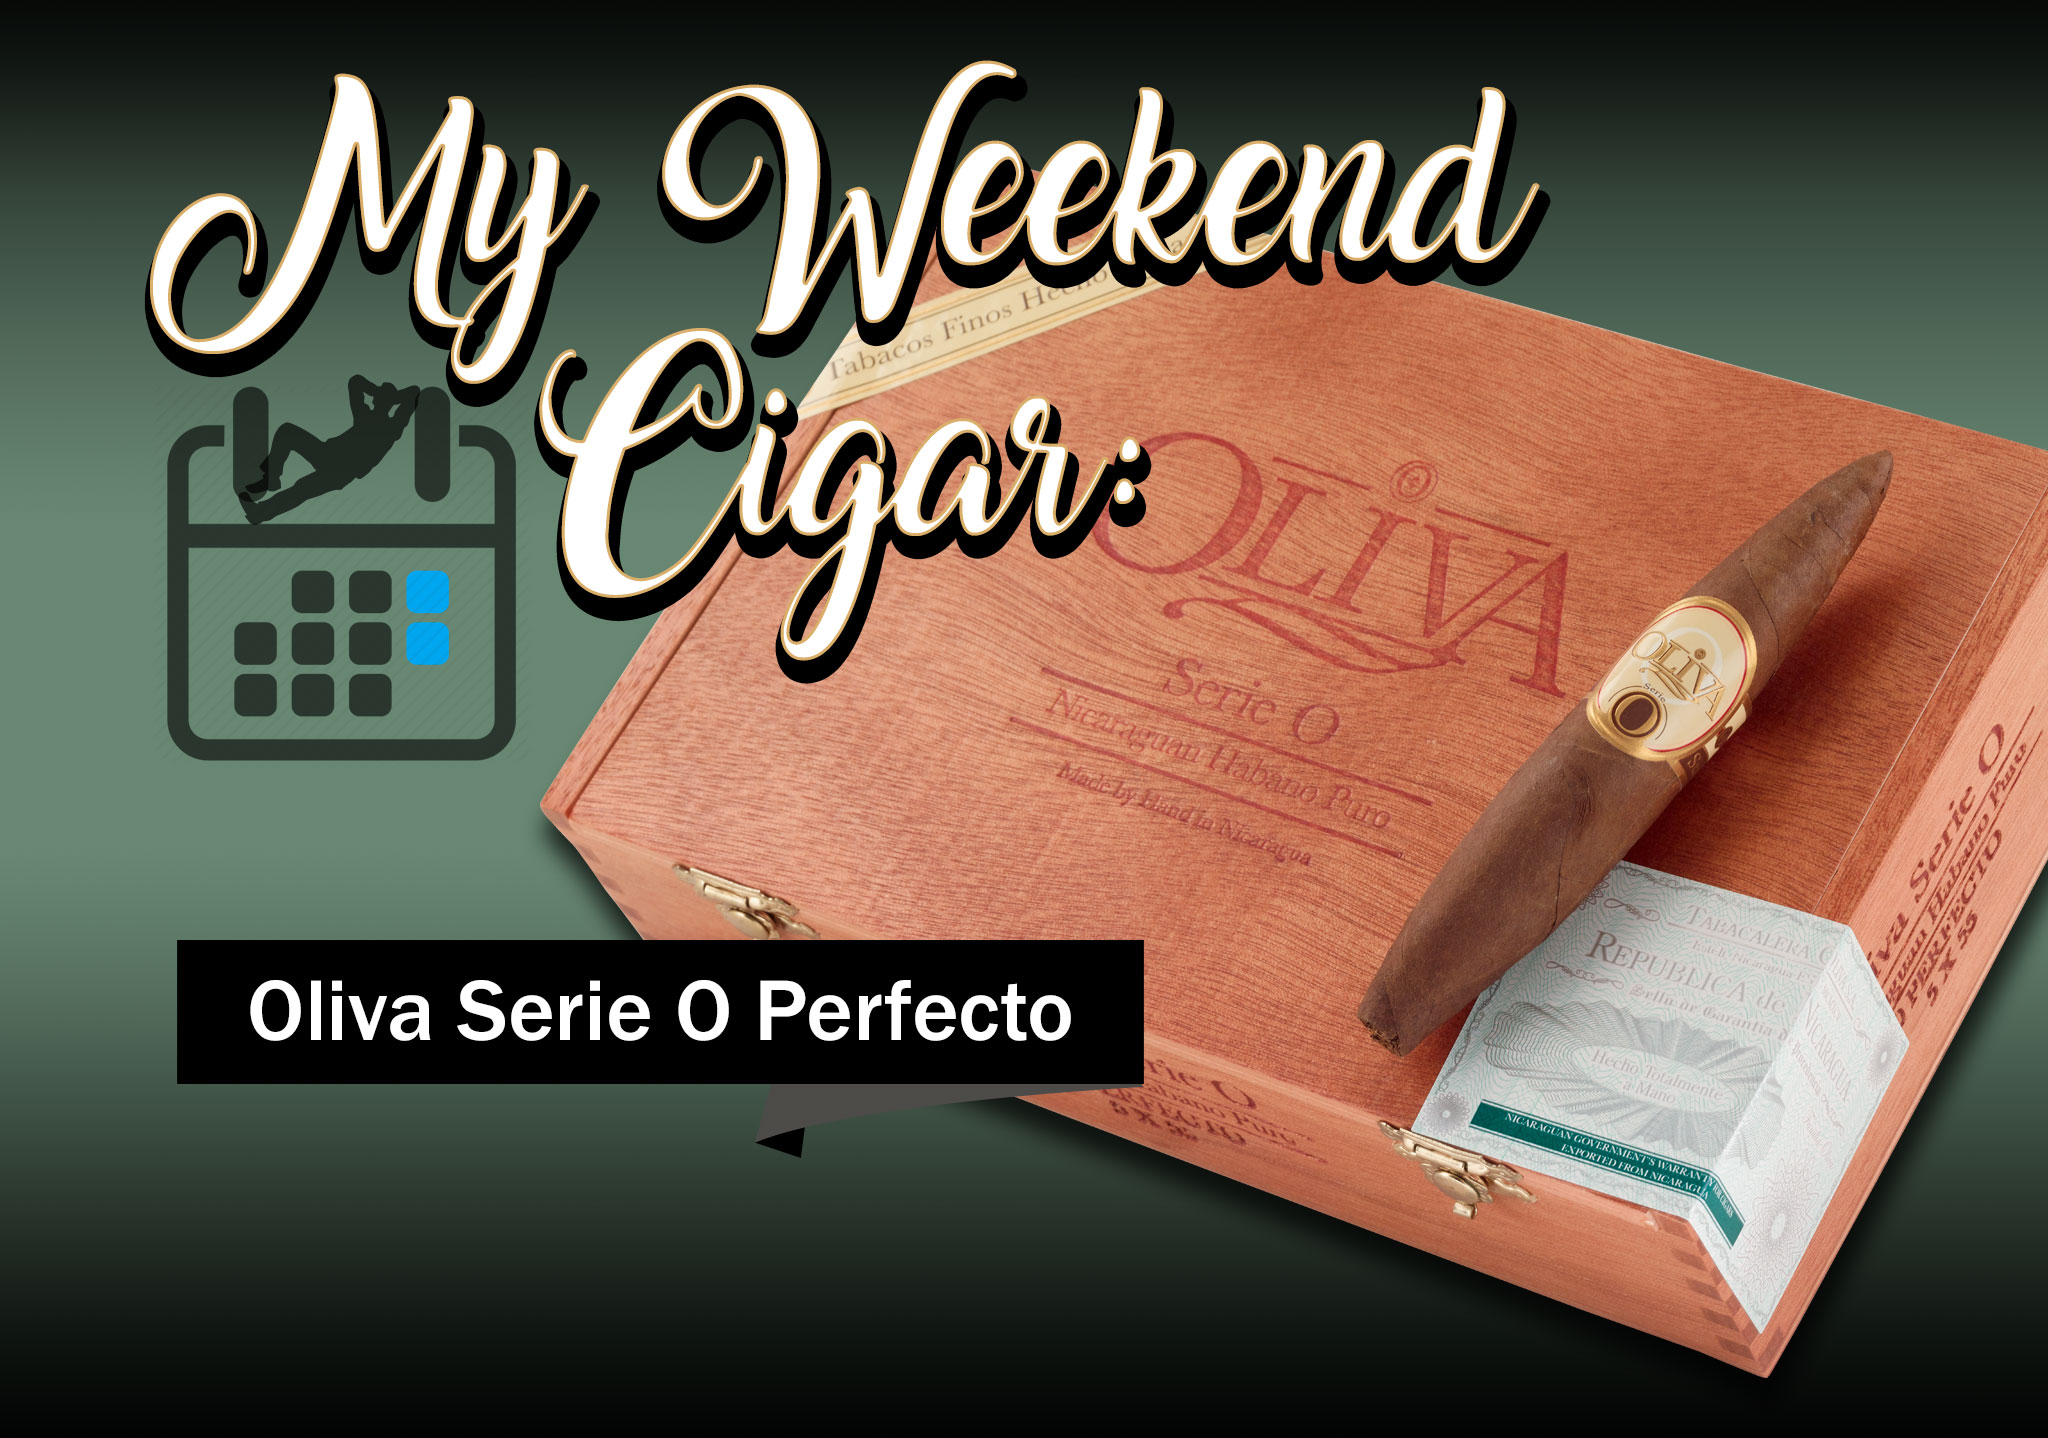 My Weekend Cigar: Apr. 30, 2018 – Oliva Serie O Perfecto